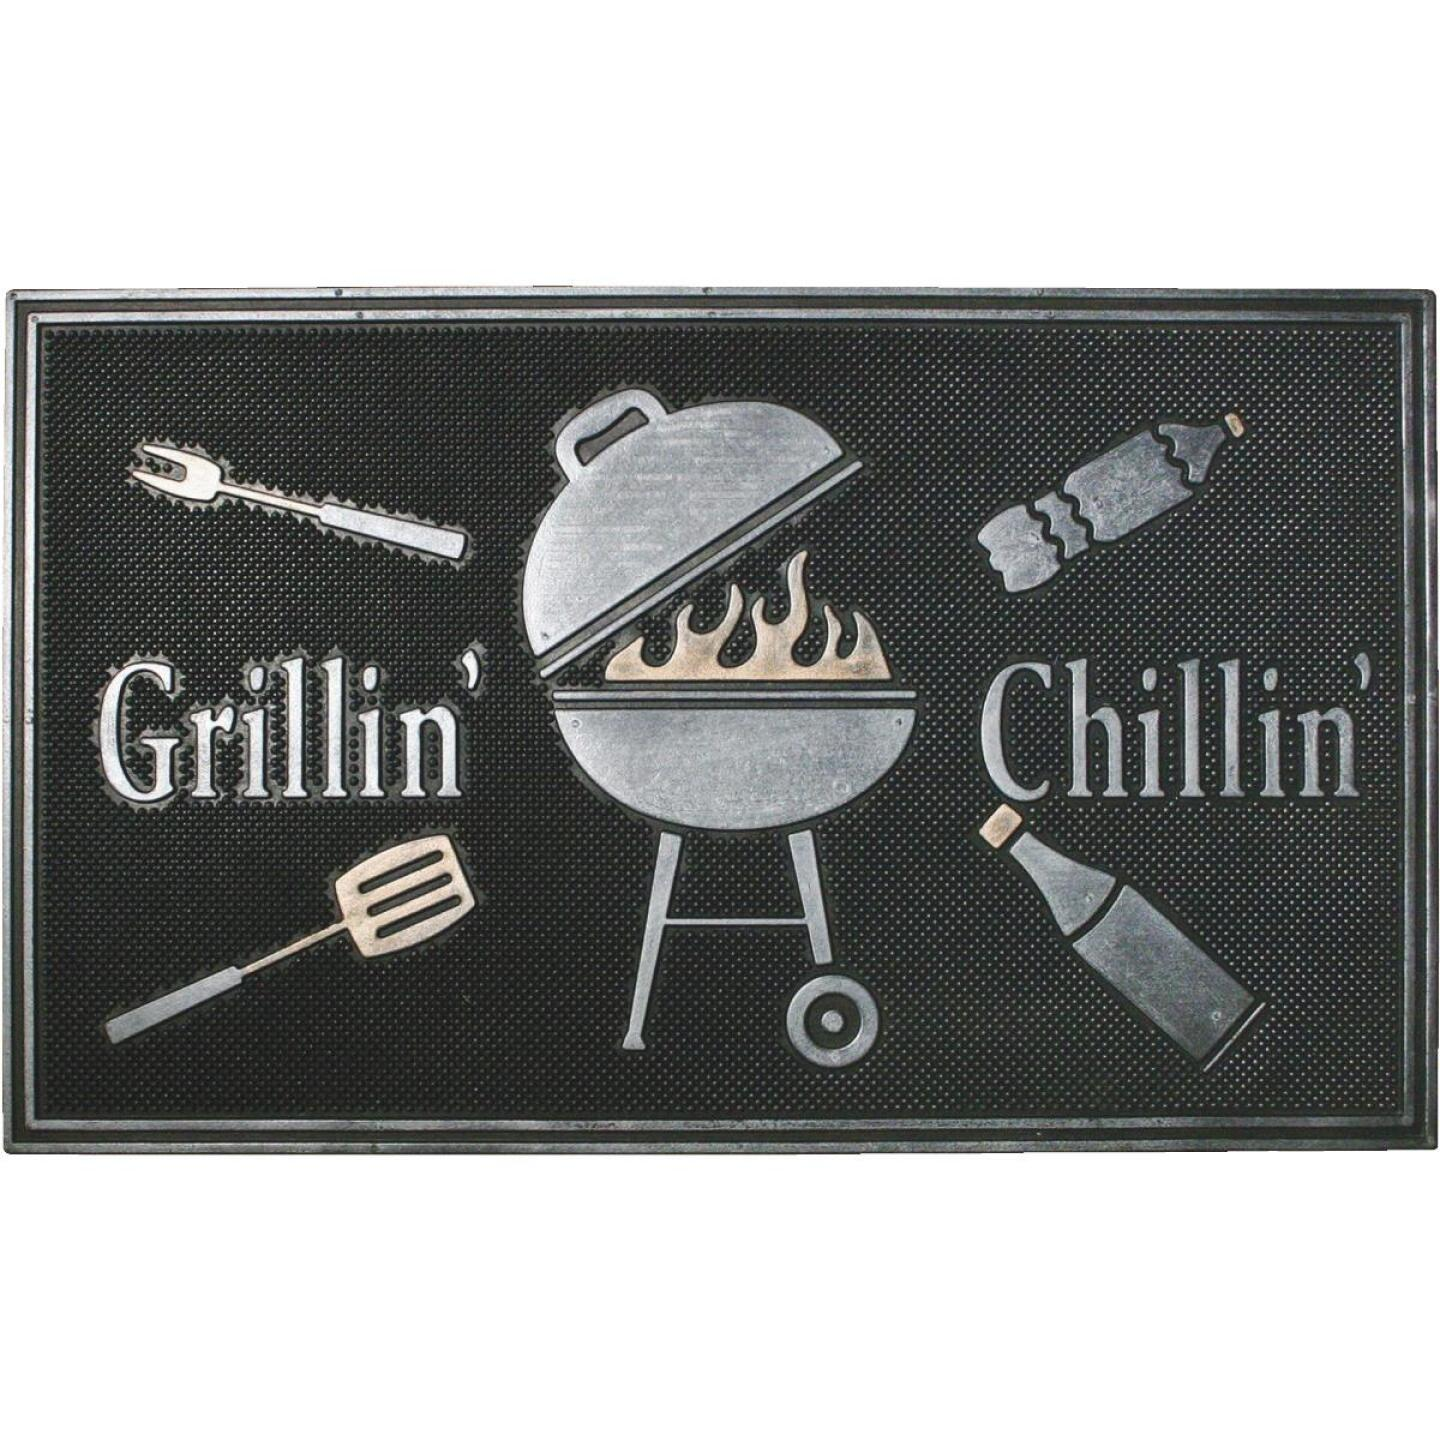 Robert Allen Home & Garden Black 18 In. x 30 In. Rubber Grillin Chillin Door Mat Image 1